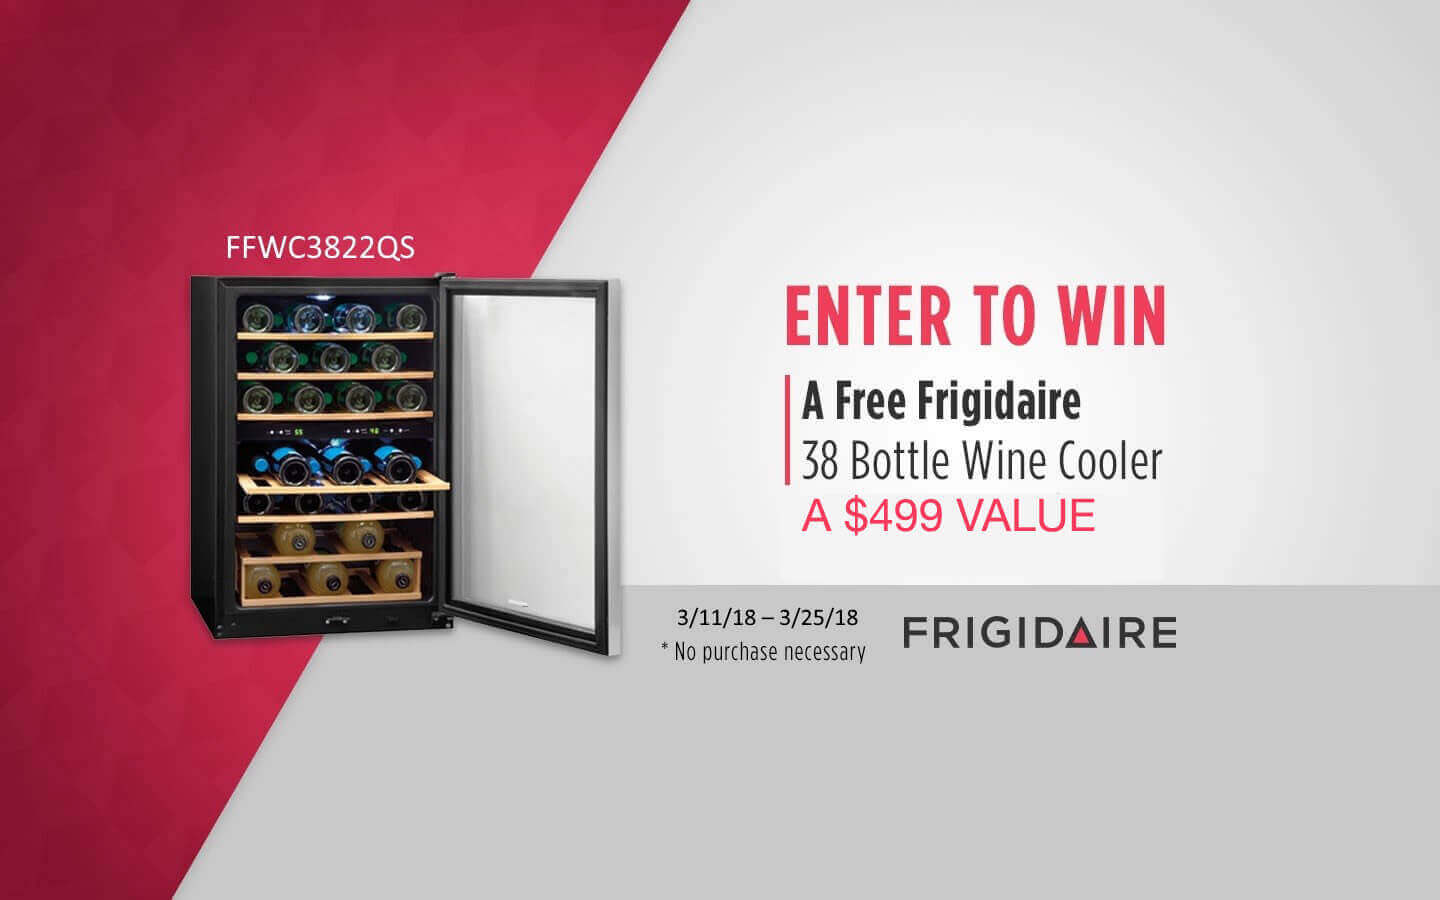 Enter to win a free Frigidaire 38 bottle wine cooler a $499 value.